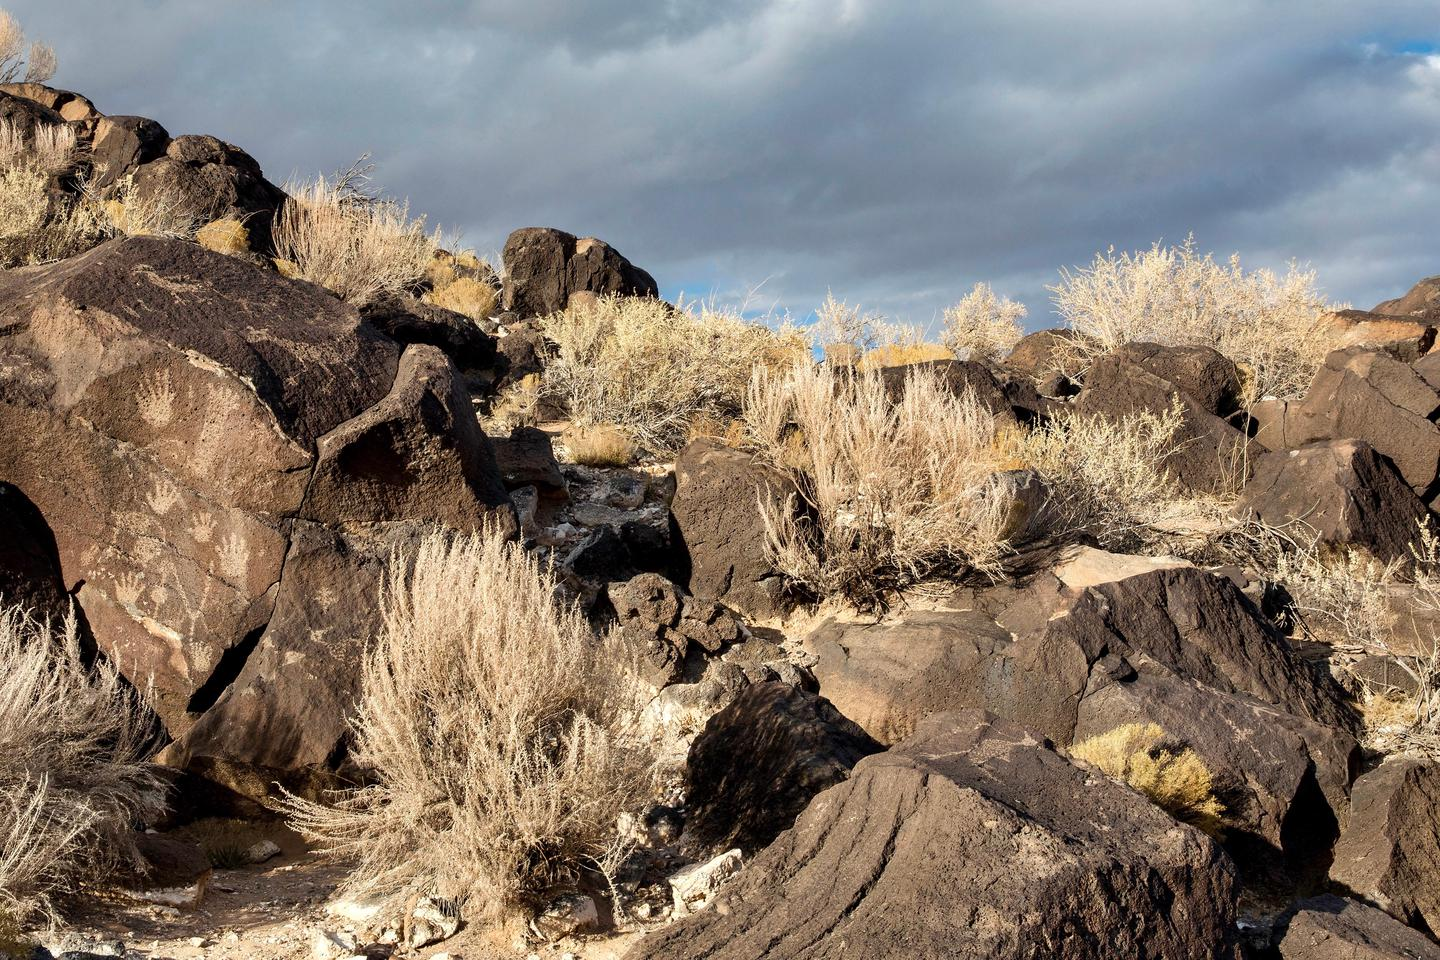 Hand Print PetroglyphsHand prints and other petroglyphs on boulders at Piedras Marcadas.